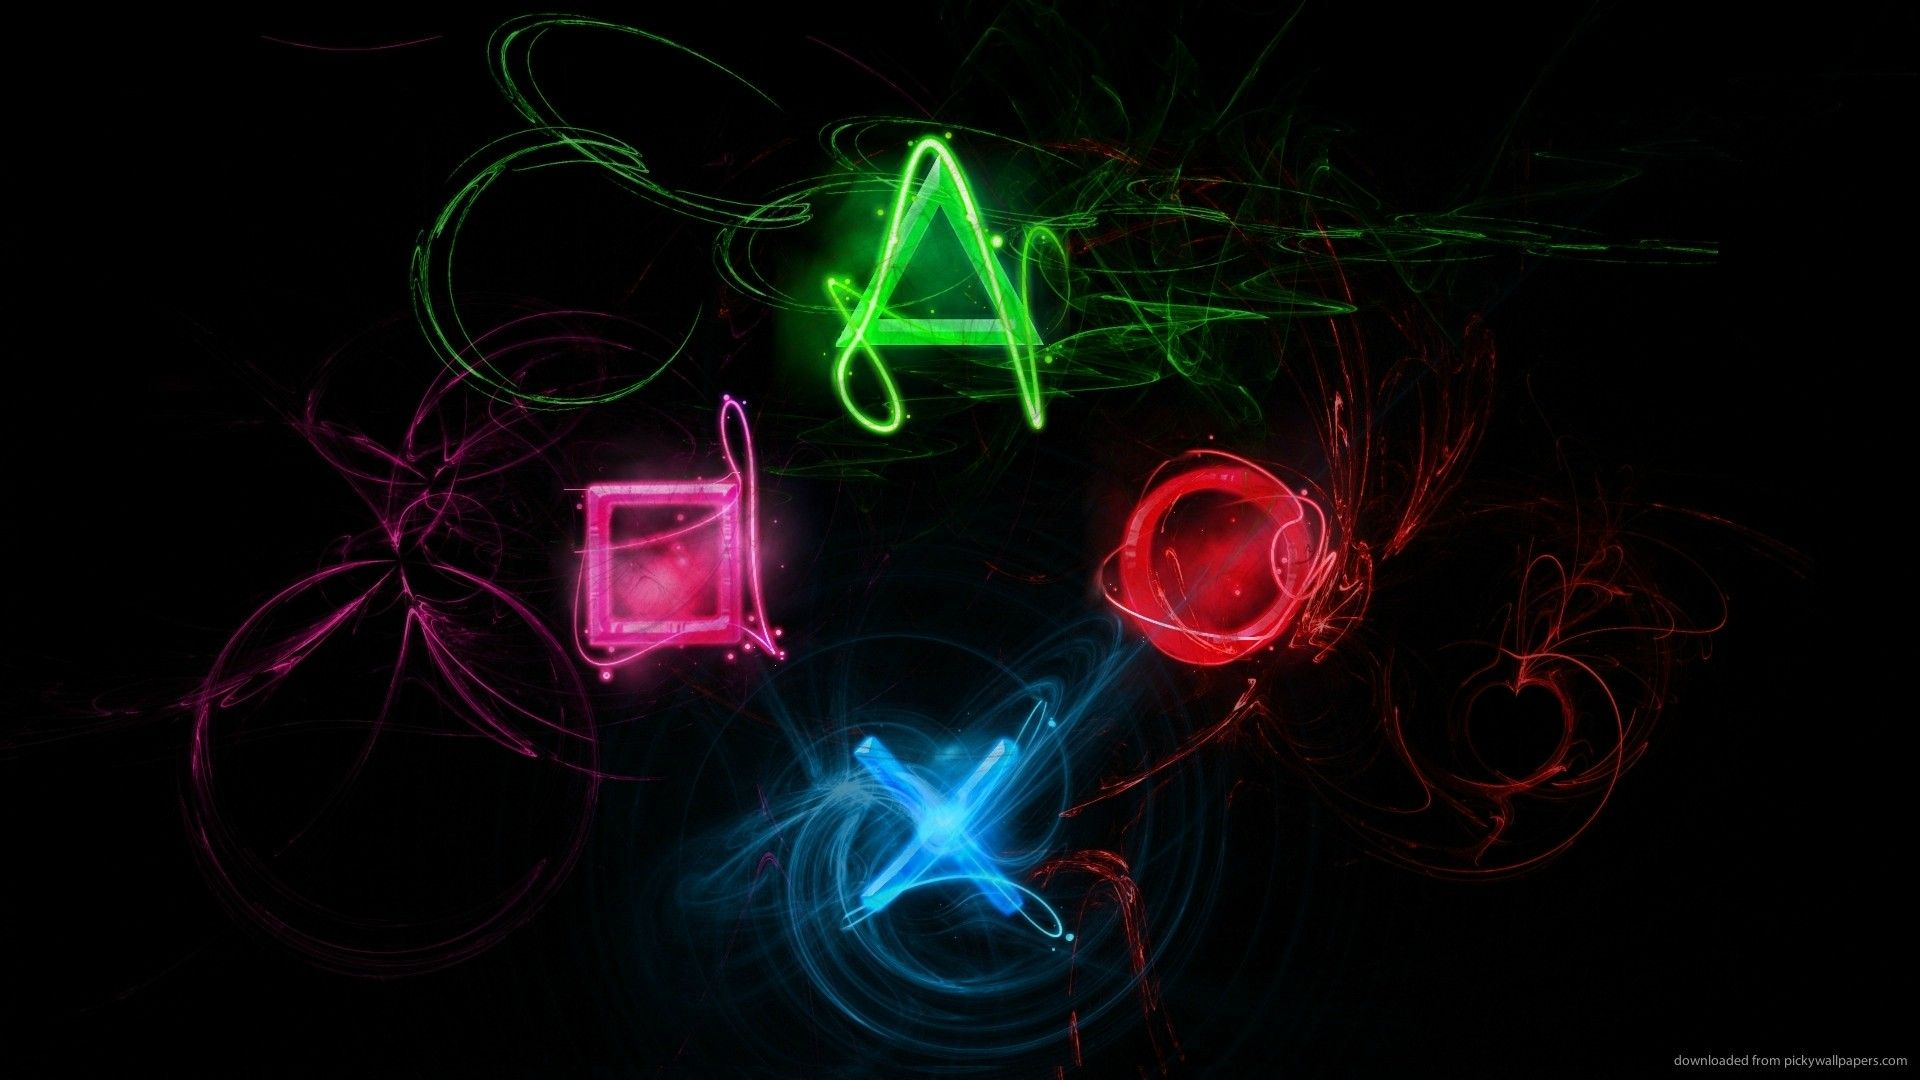 Playstation Controller Wallpaper Gaming Wallpapers 2048x1152 Wallpapers Xperia Wallpaper